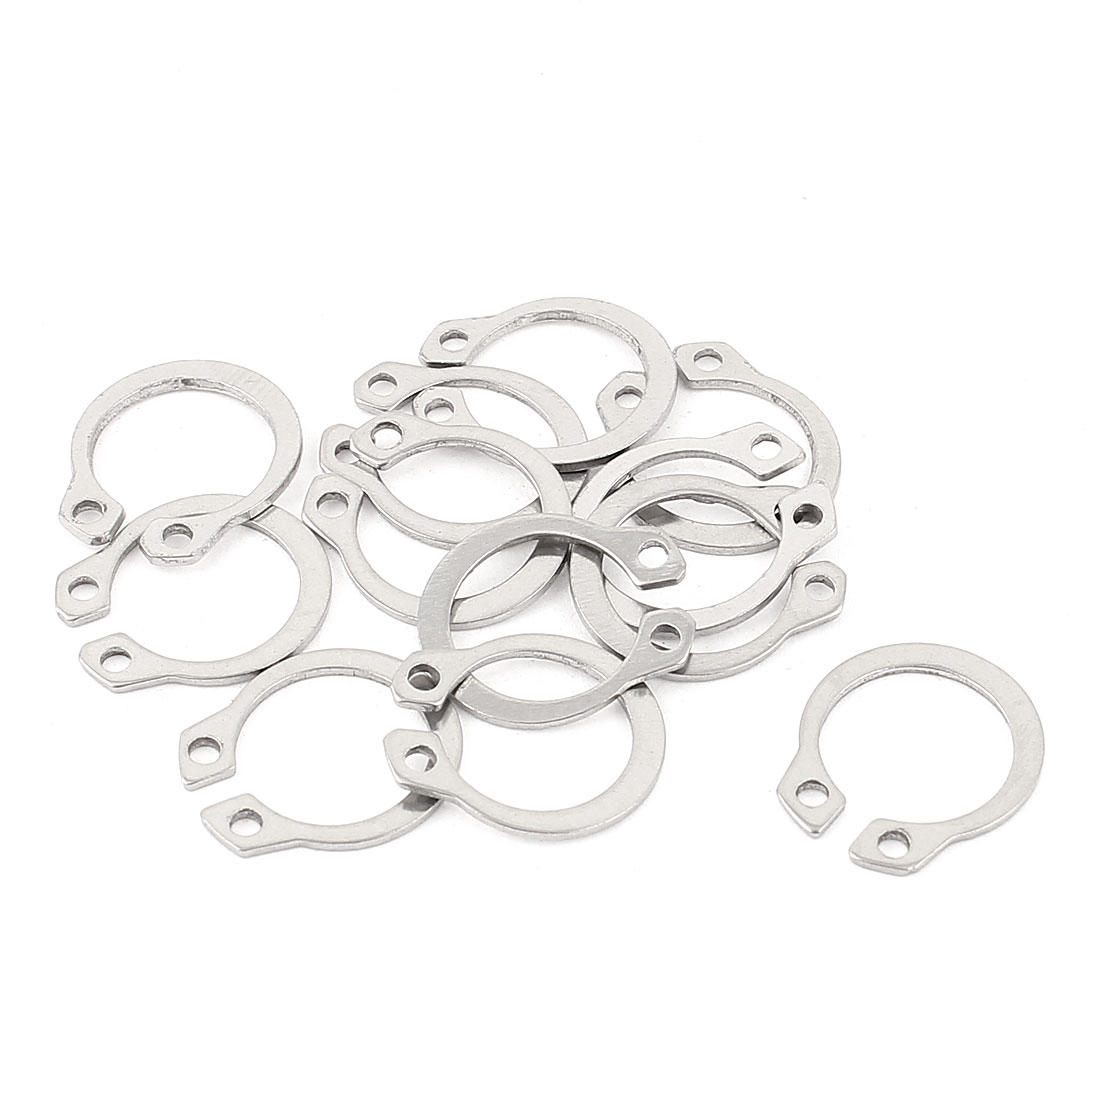 10pcs 304 Stainless Steel External Circlip Retaining Shaft Snap Rings 13mm